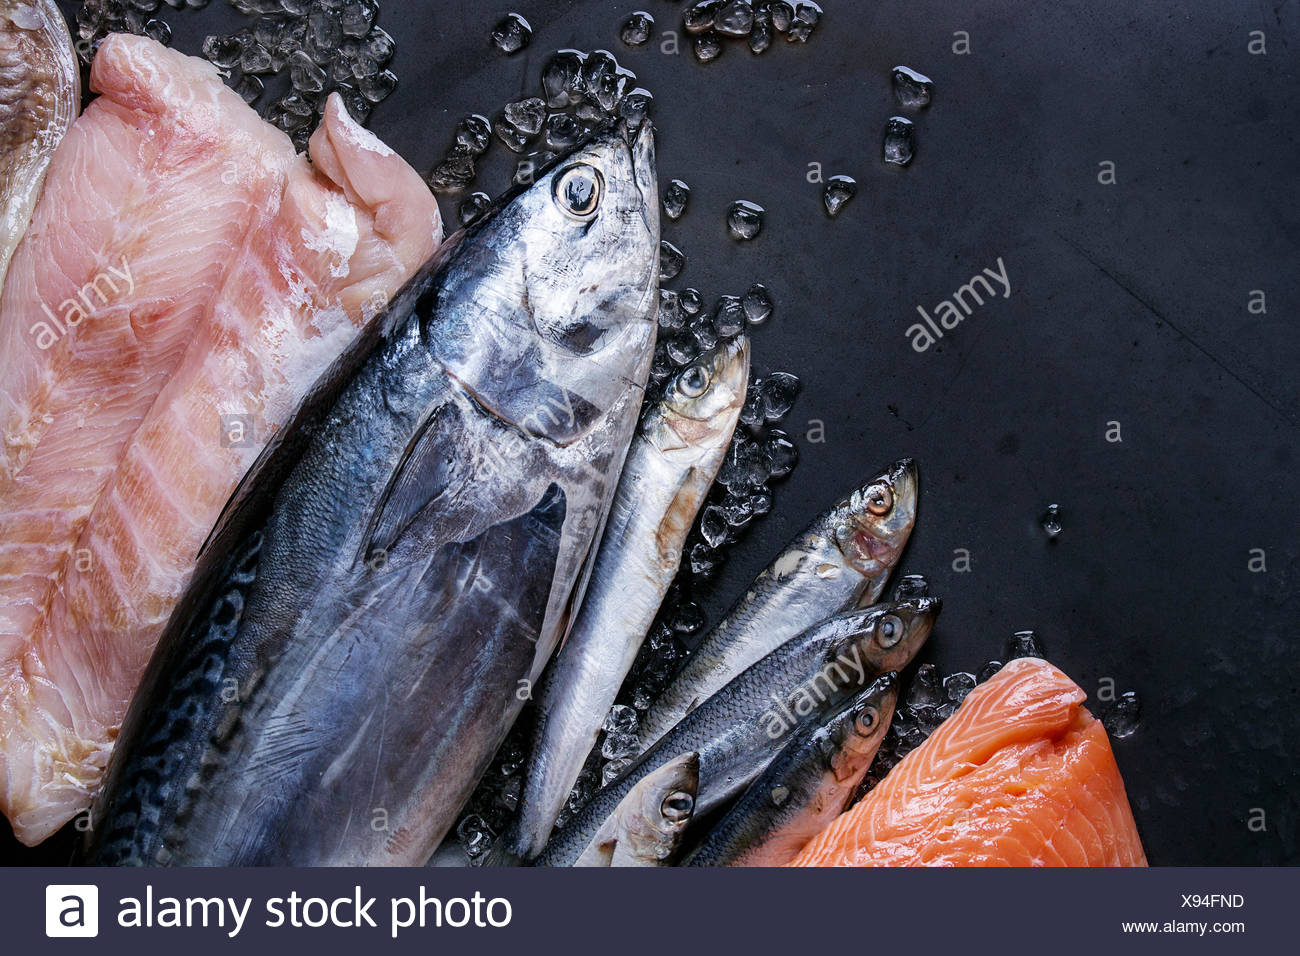 Variety Of Raw Fresh Fish Whole Tuna And Herring Fillet Of Salmon